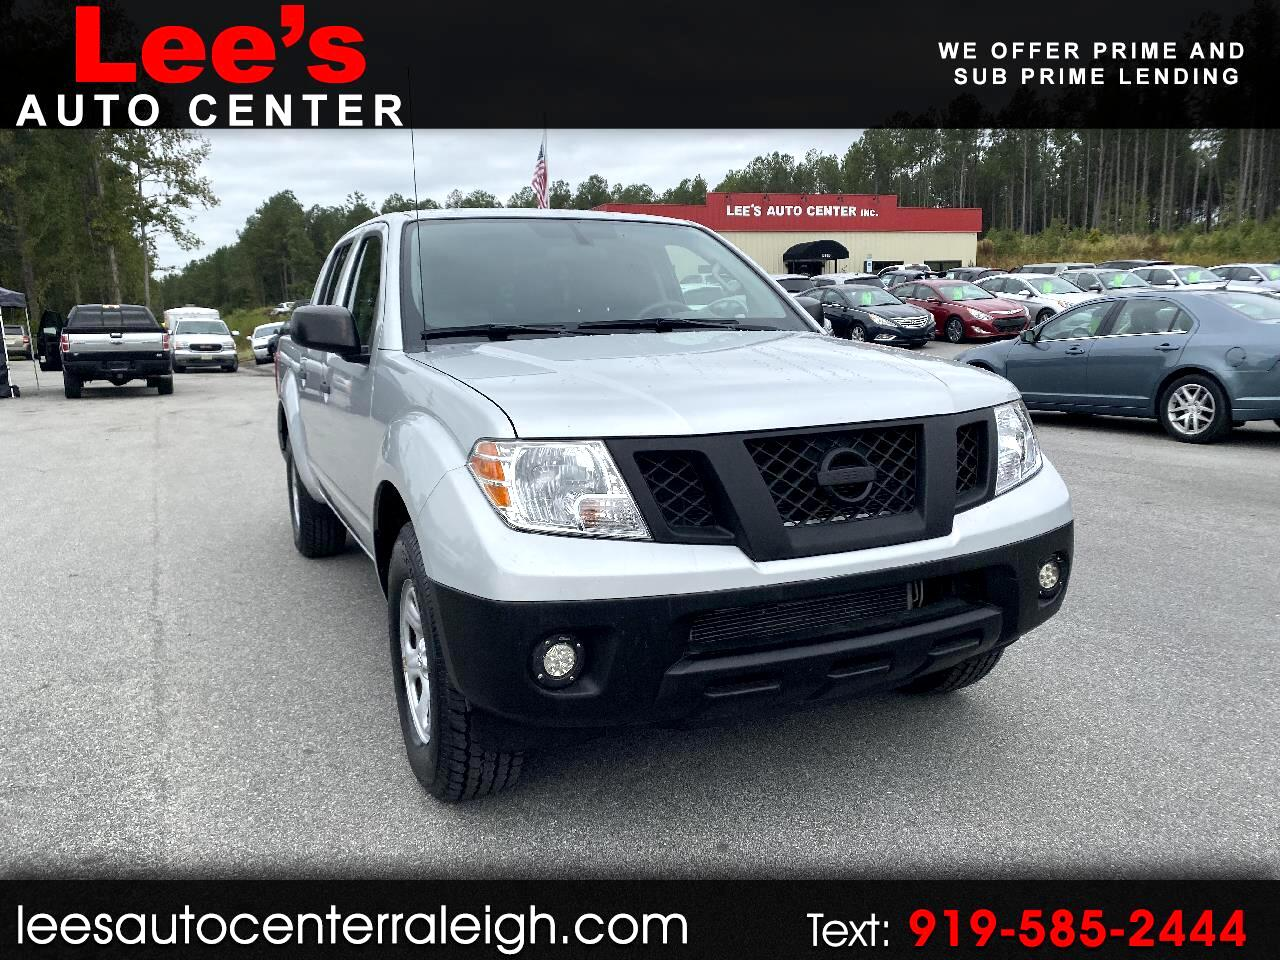 2013 Nissan Frontier 2WD Crew Cab SWB Manual S